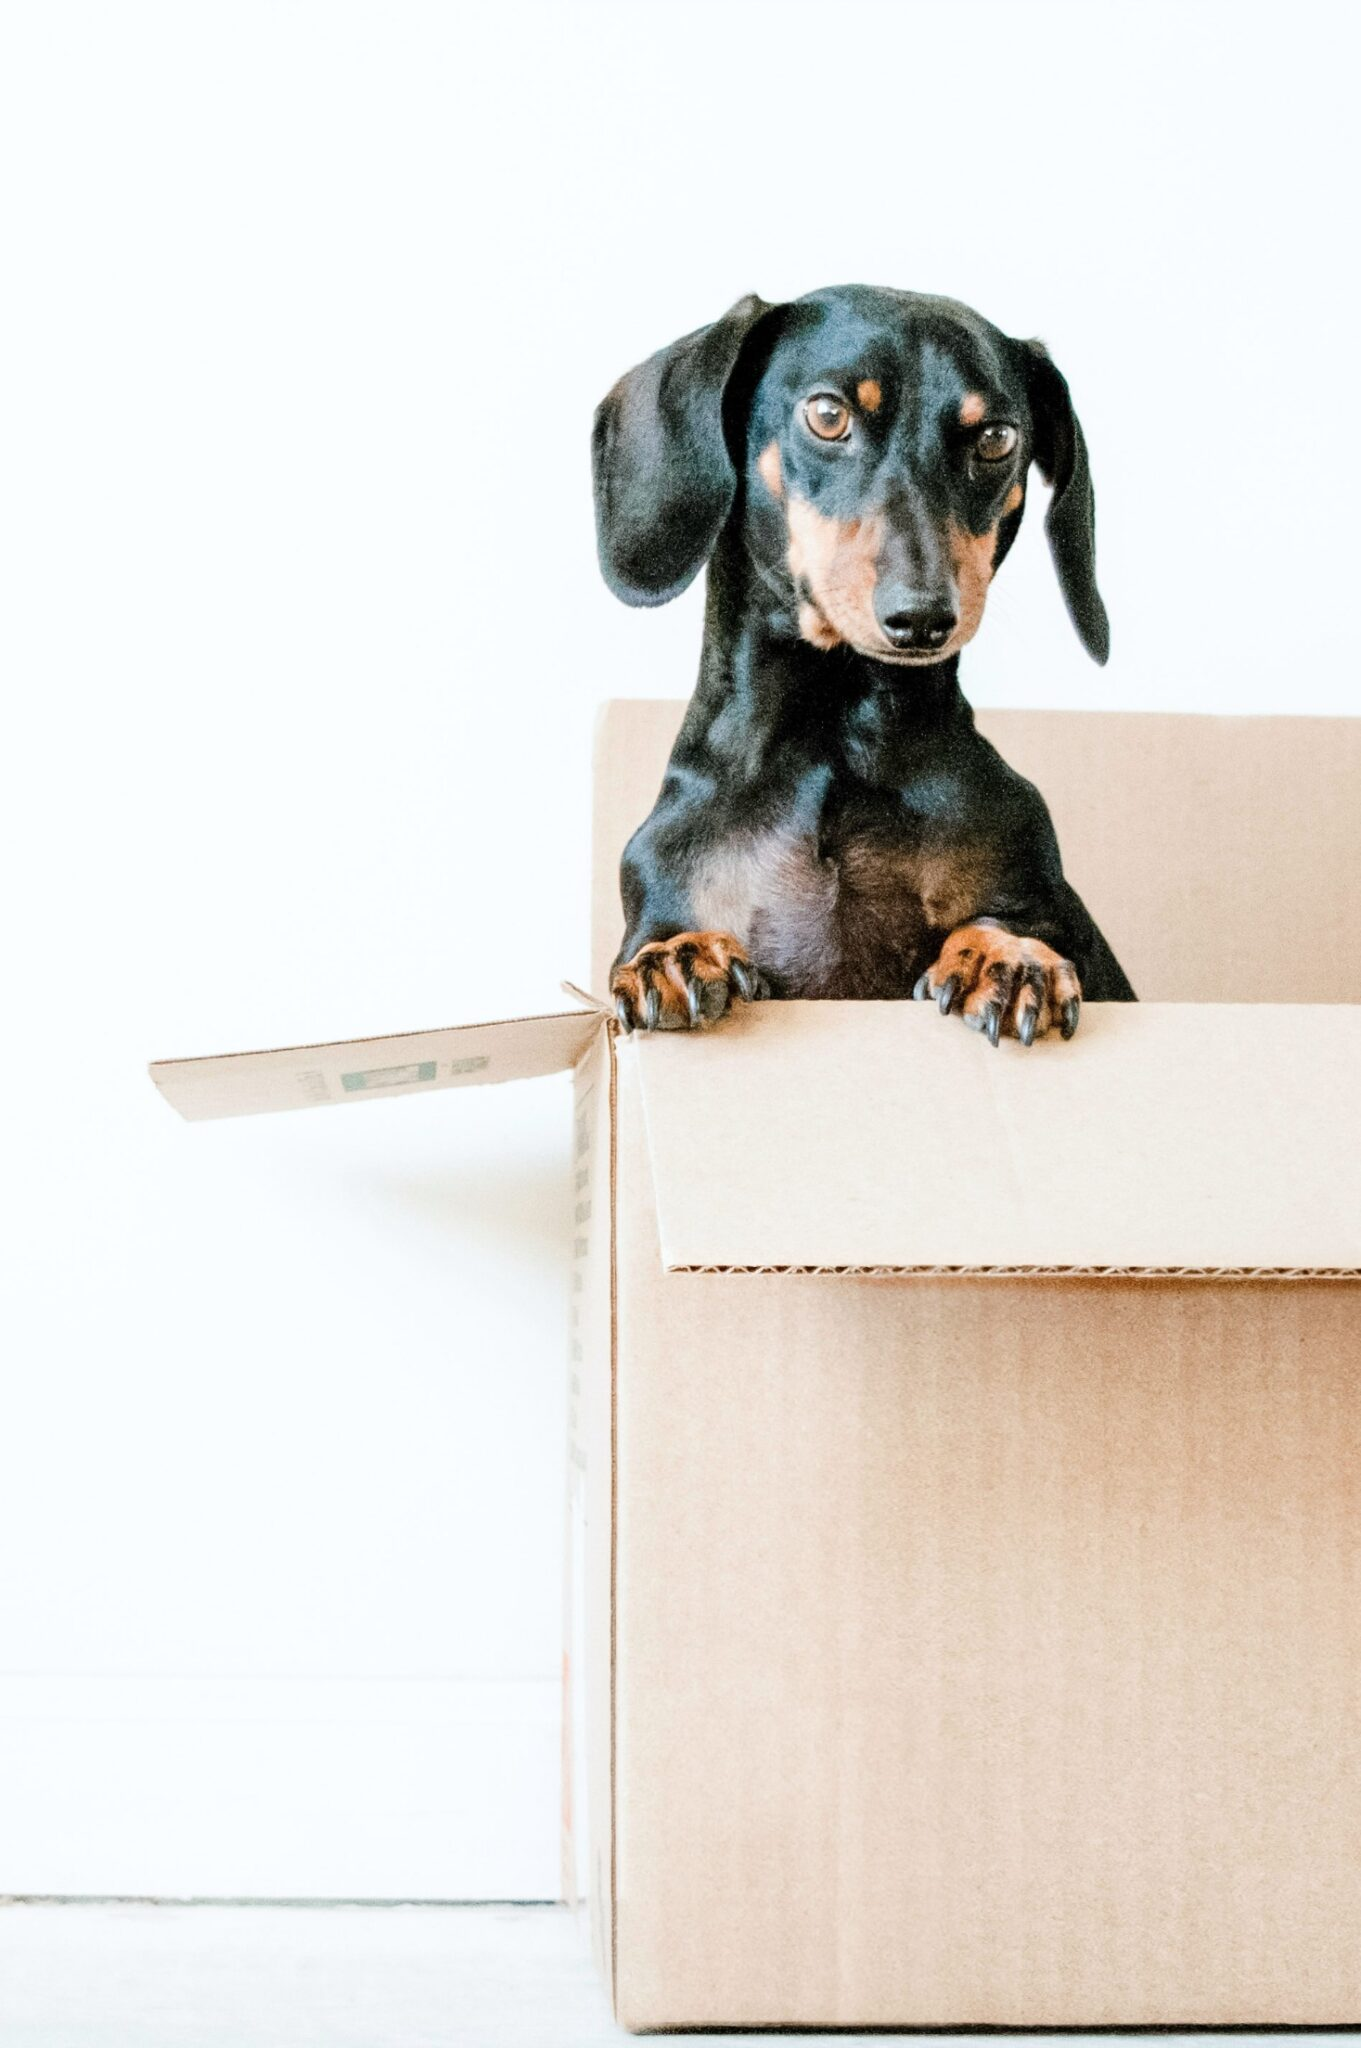 Dog sitting in a box while his owners plan on moving out.